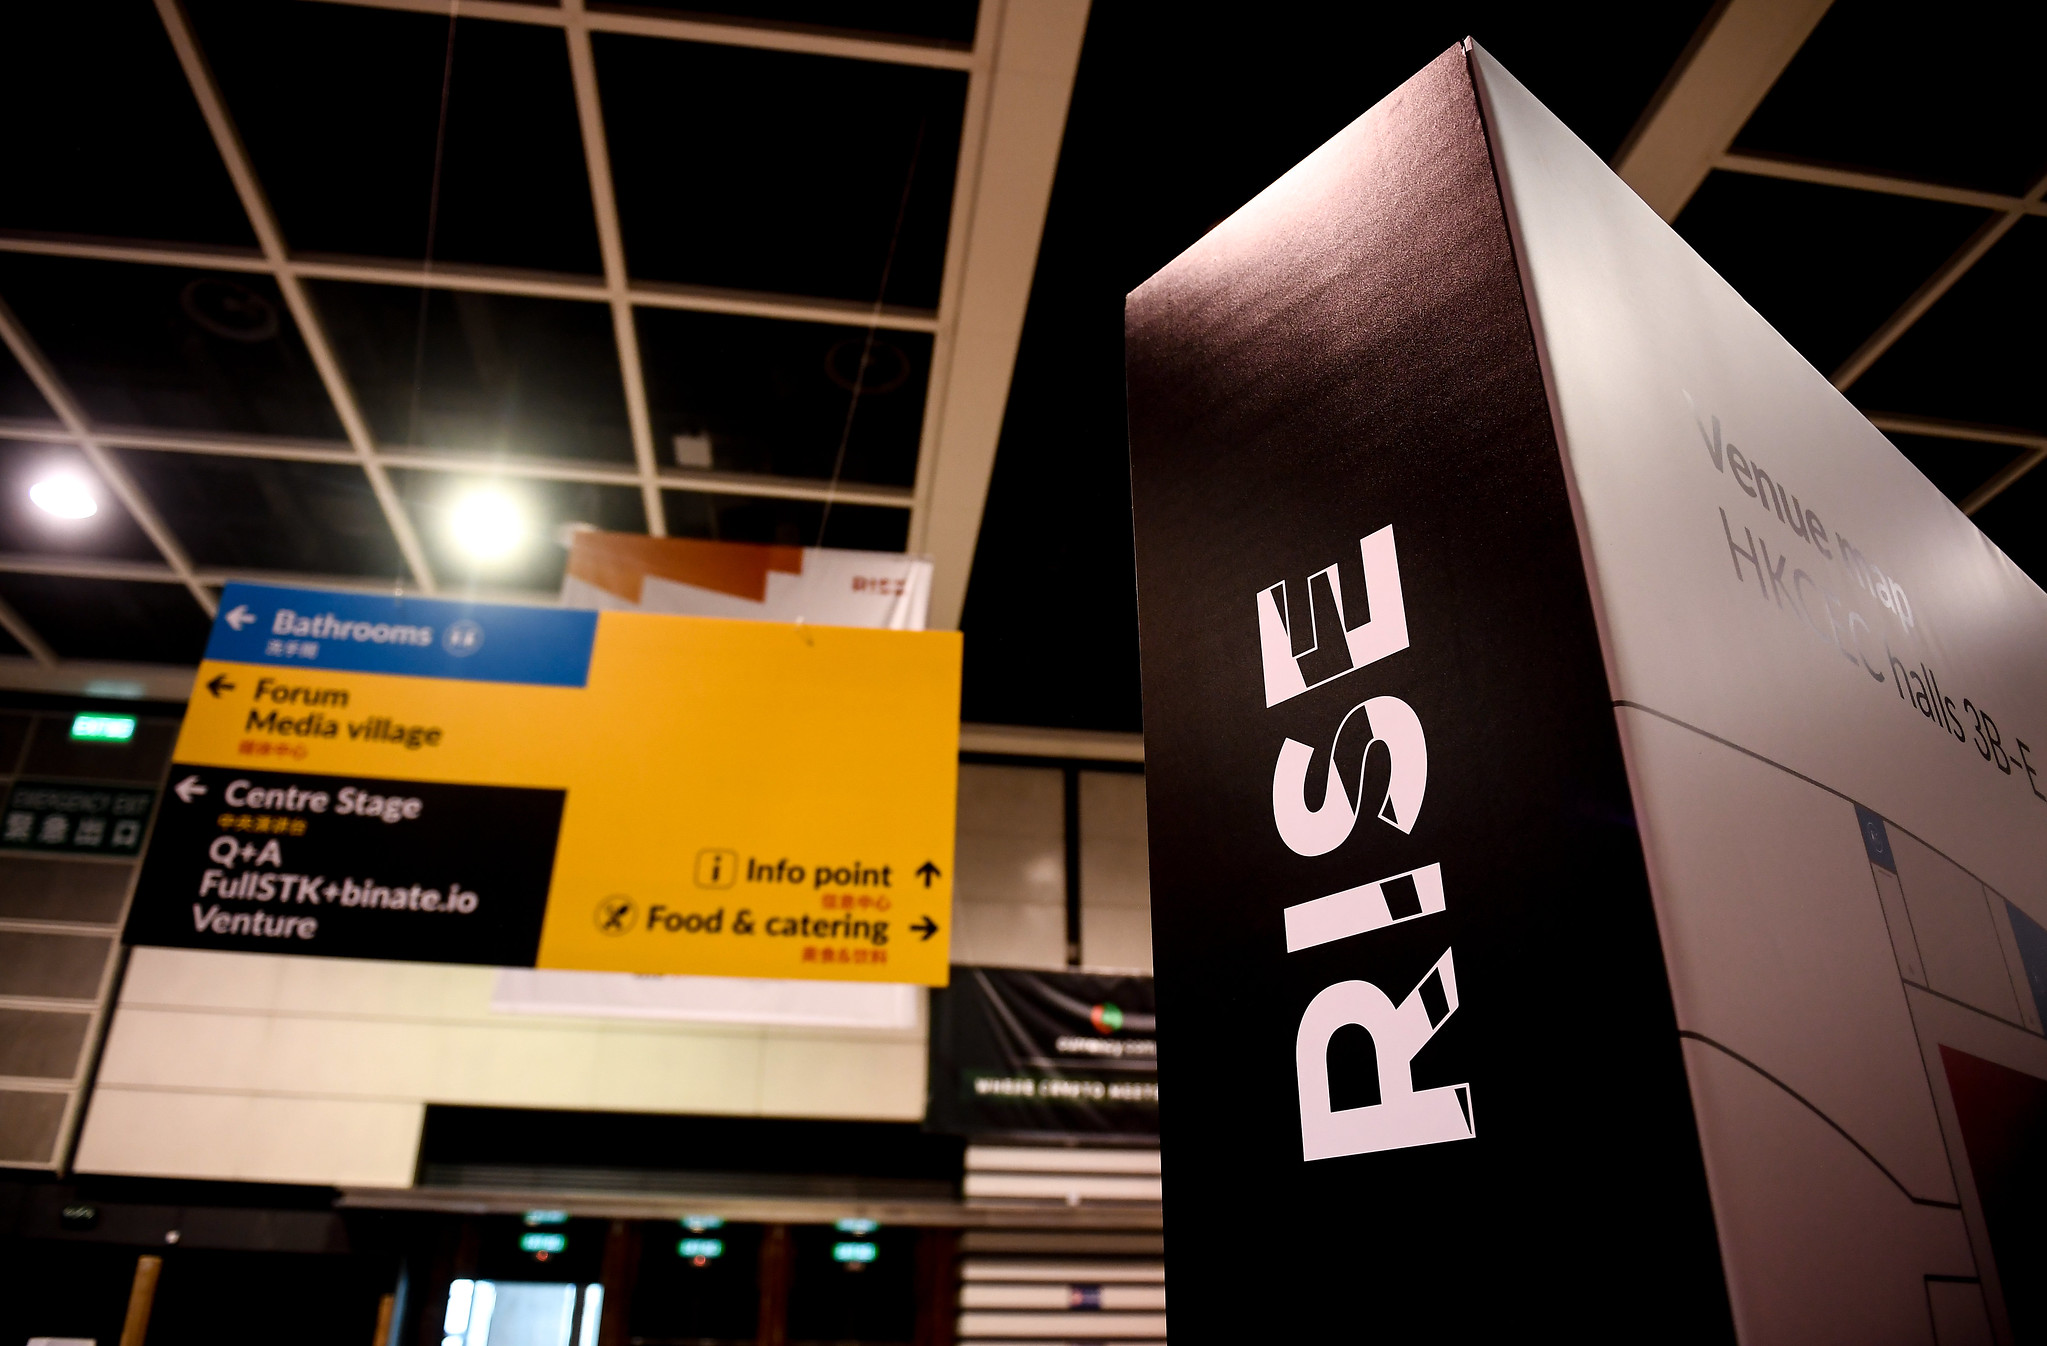 RISE Hong Kong Conference attended by Concise Software 2019